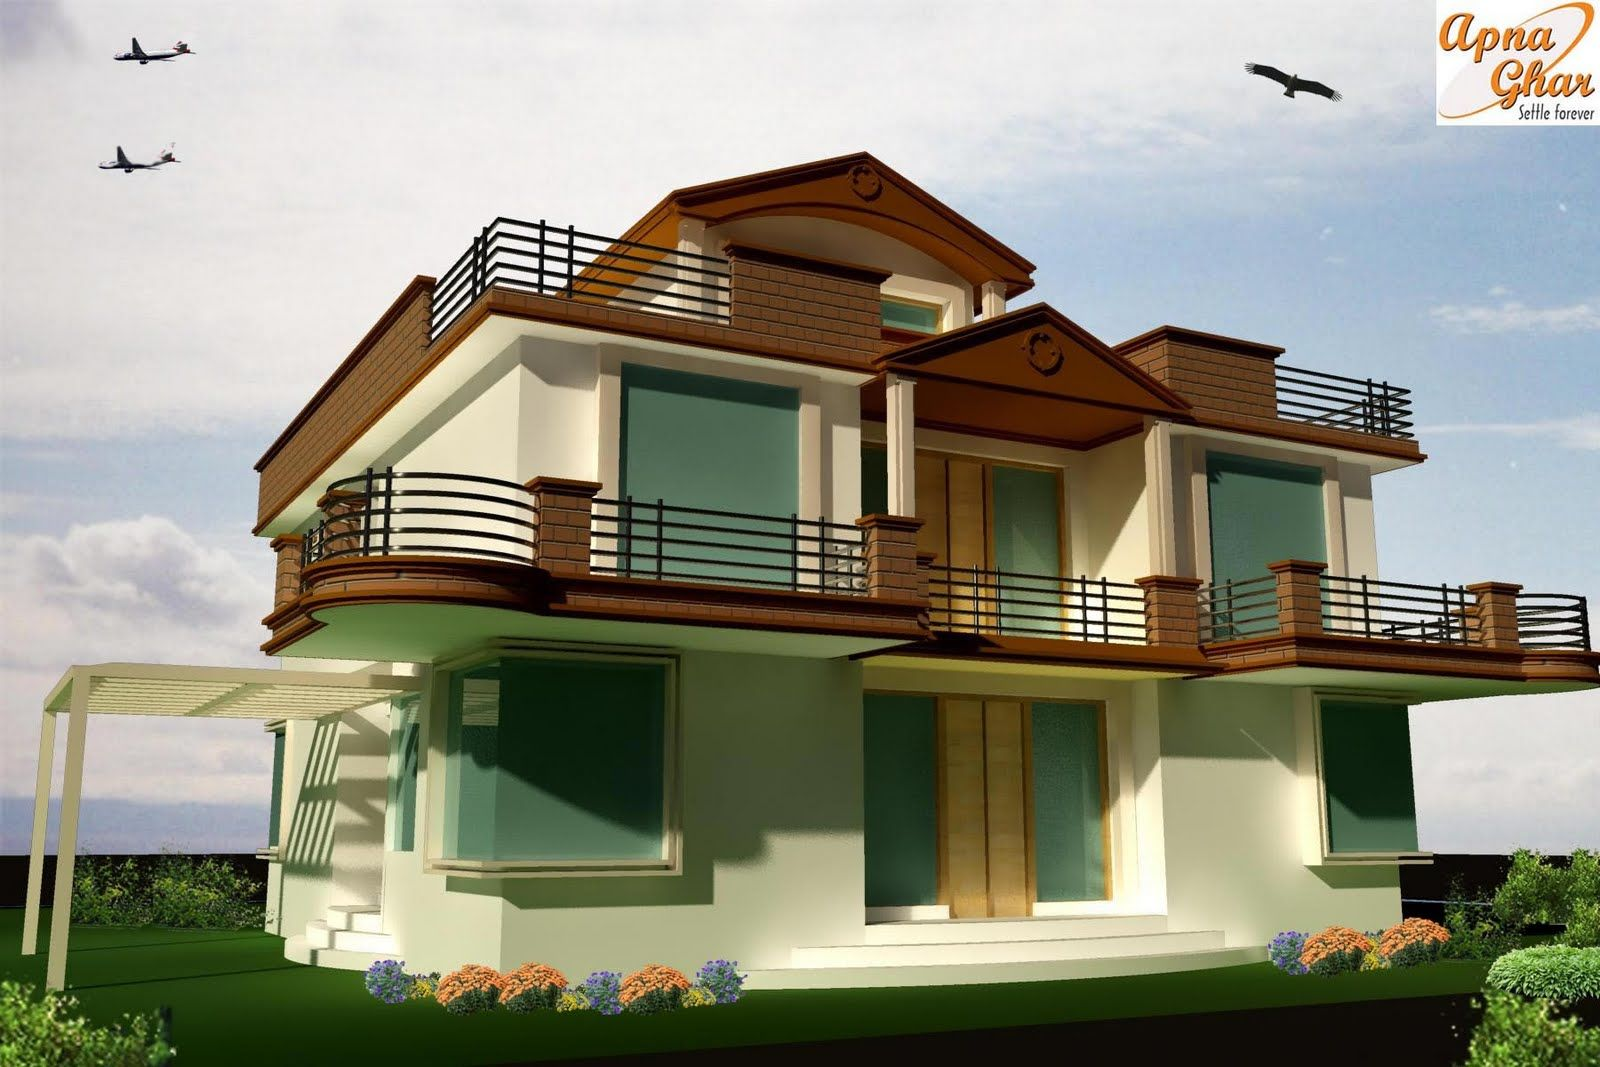 Architectural designs modern architectural house plans for Home design ideas facebook